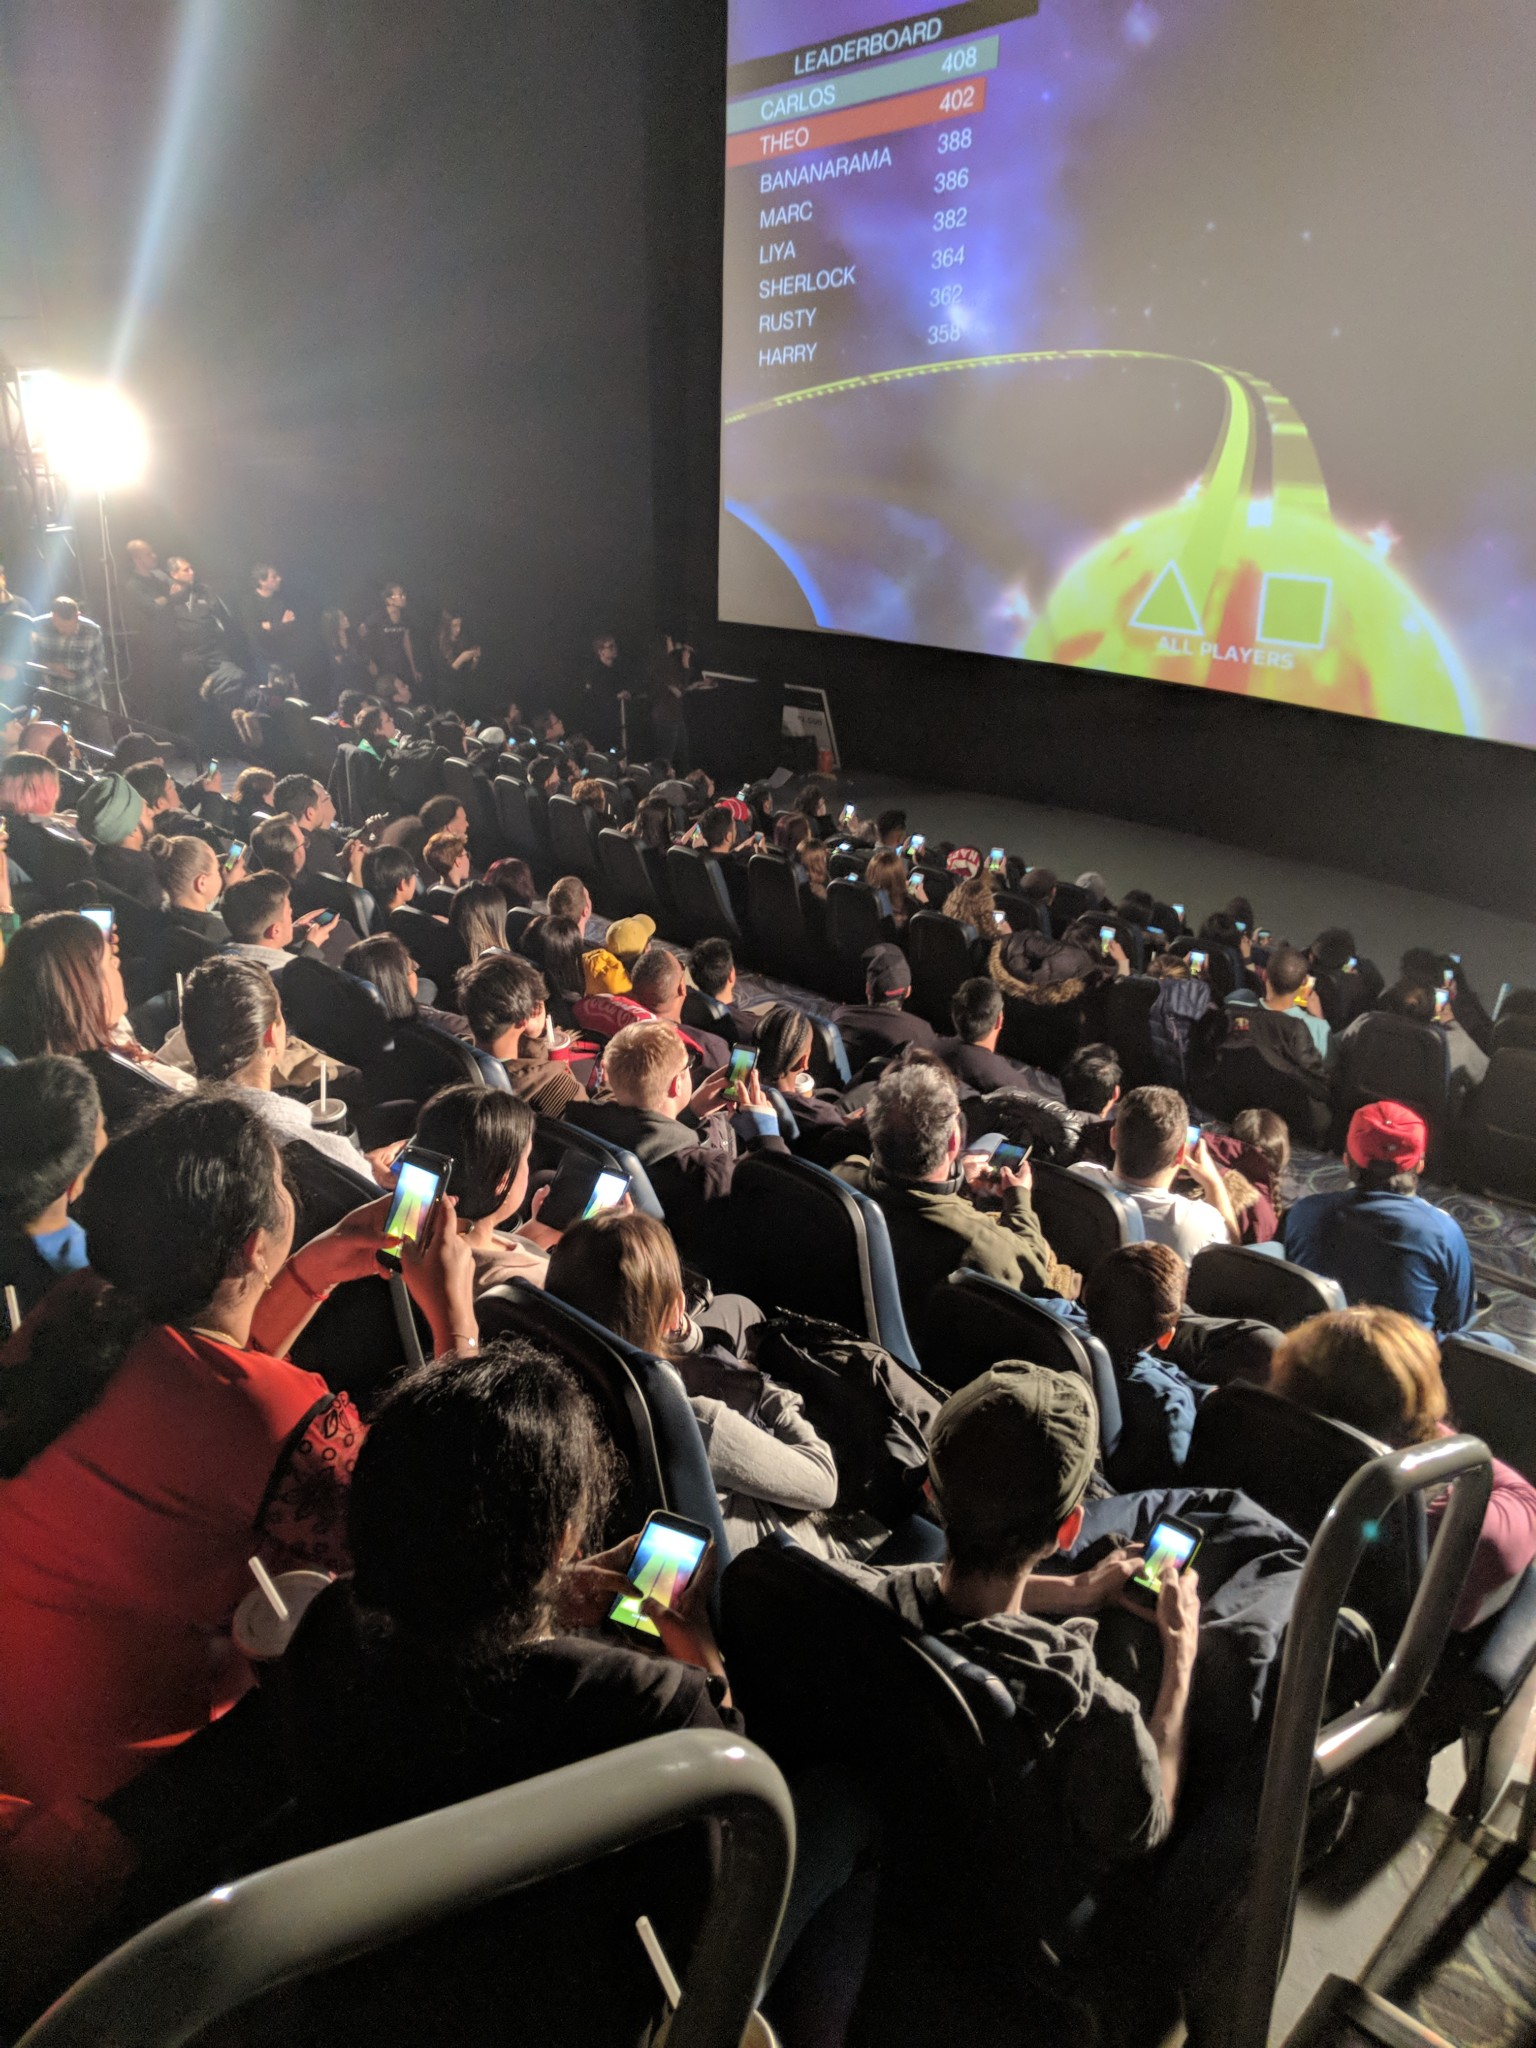 TimePlay gaming event sees overwhelming turnout - TimePlay